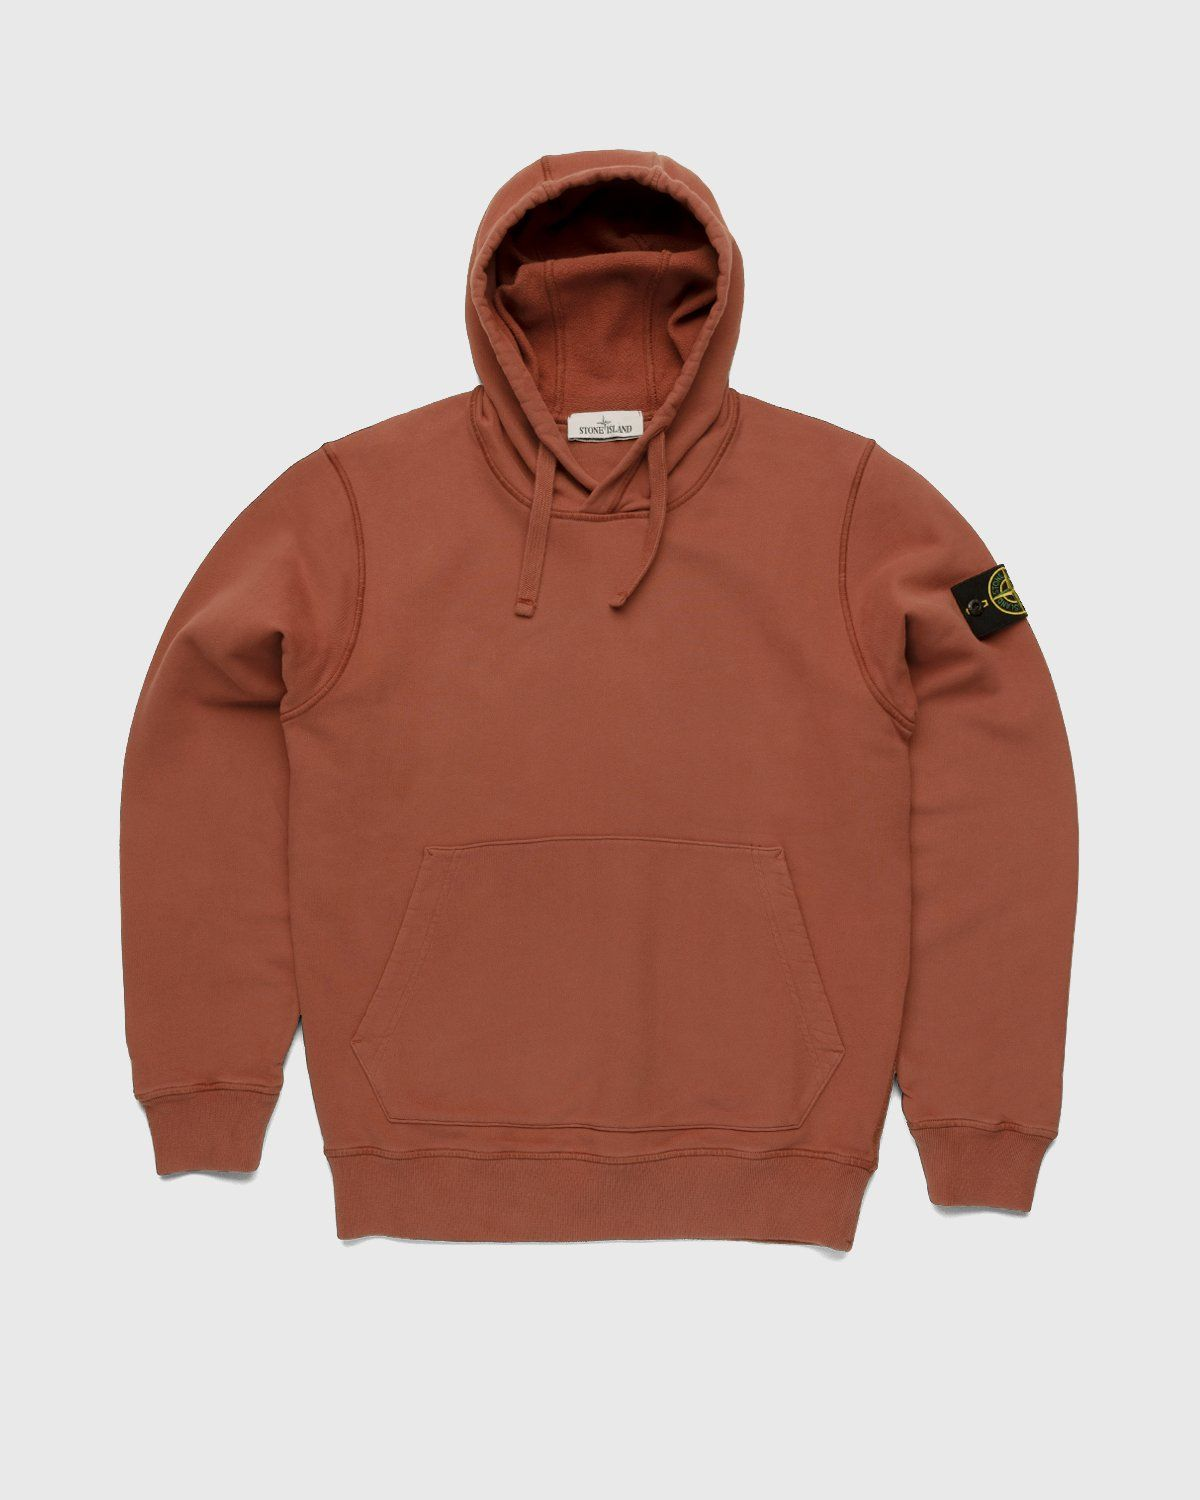 Stone Island – Dust Color Treatment Hoodie Brick Red - Image 1